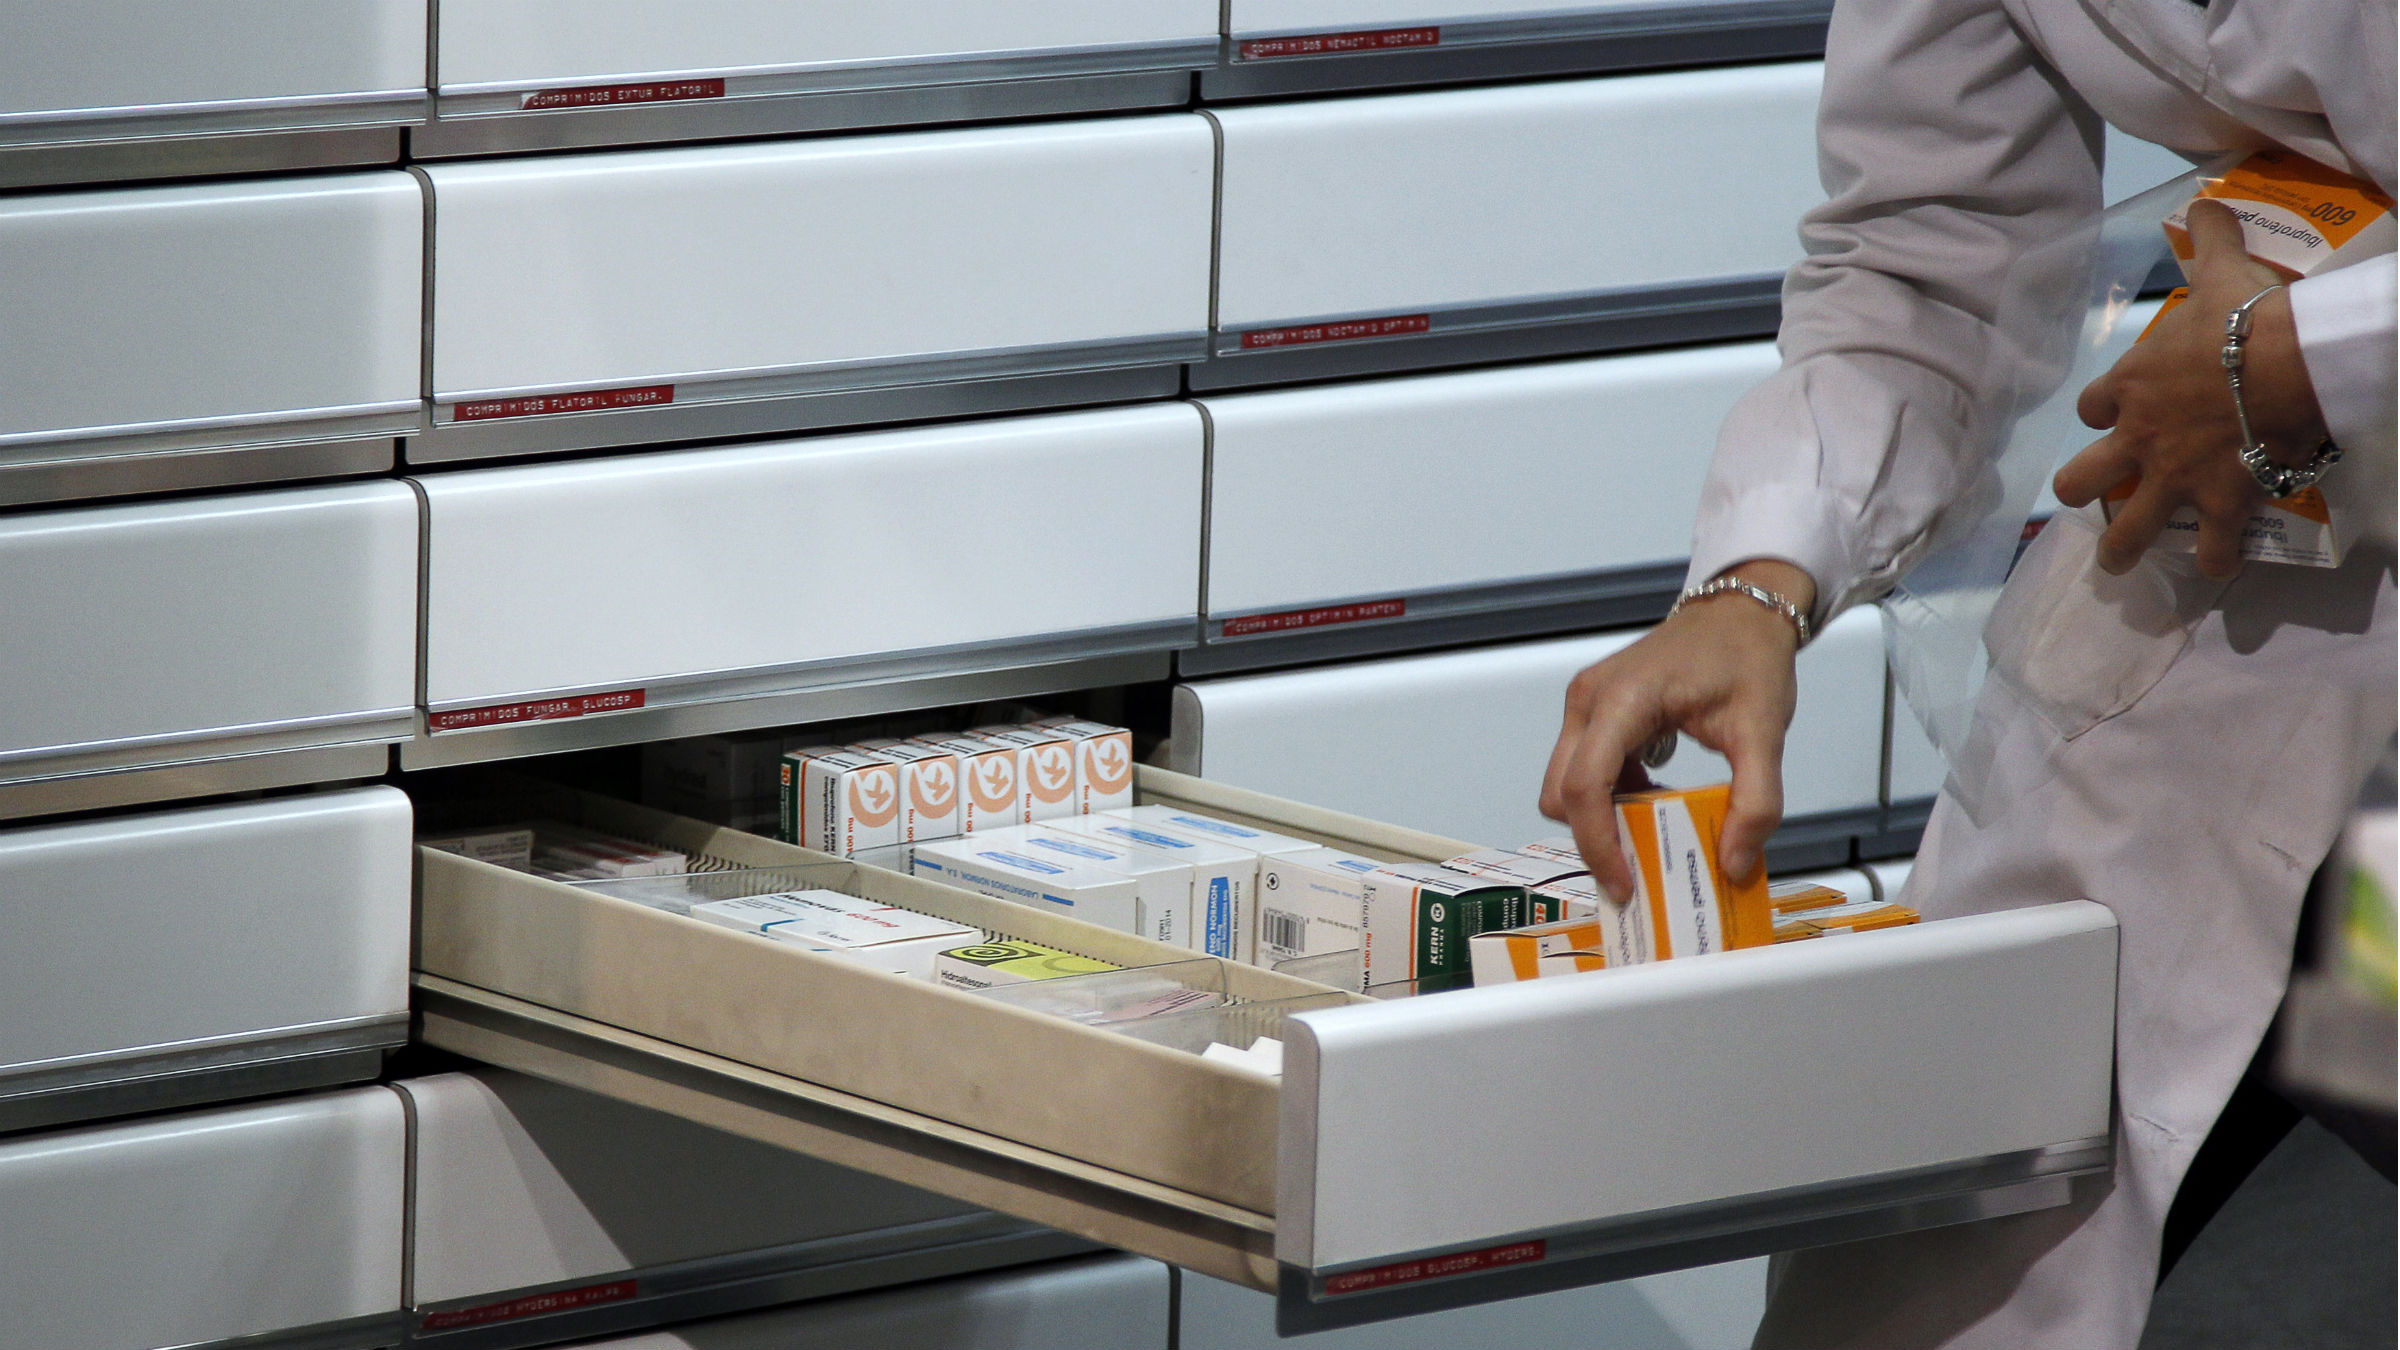 A chemist places medicines in a drawer at a pharmacy in Madrid April 18, 2012. Spain's government met regional officials on Wednesday to agree ways to cut state healthcare, an attack on a treasured welfare system that will fuel anger among a population weary of EU-enforced austerity to tackle a ballooning deficit. The conservative government has warned Spaniards they would have to start paying more for prescriptions, part of the welfare system that has provided state-financed health and education since the country's transition to democracy began in the 1970s.